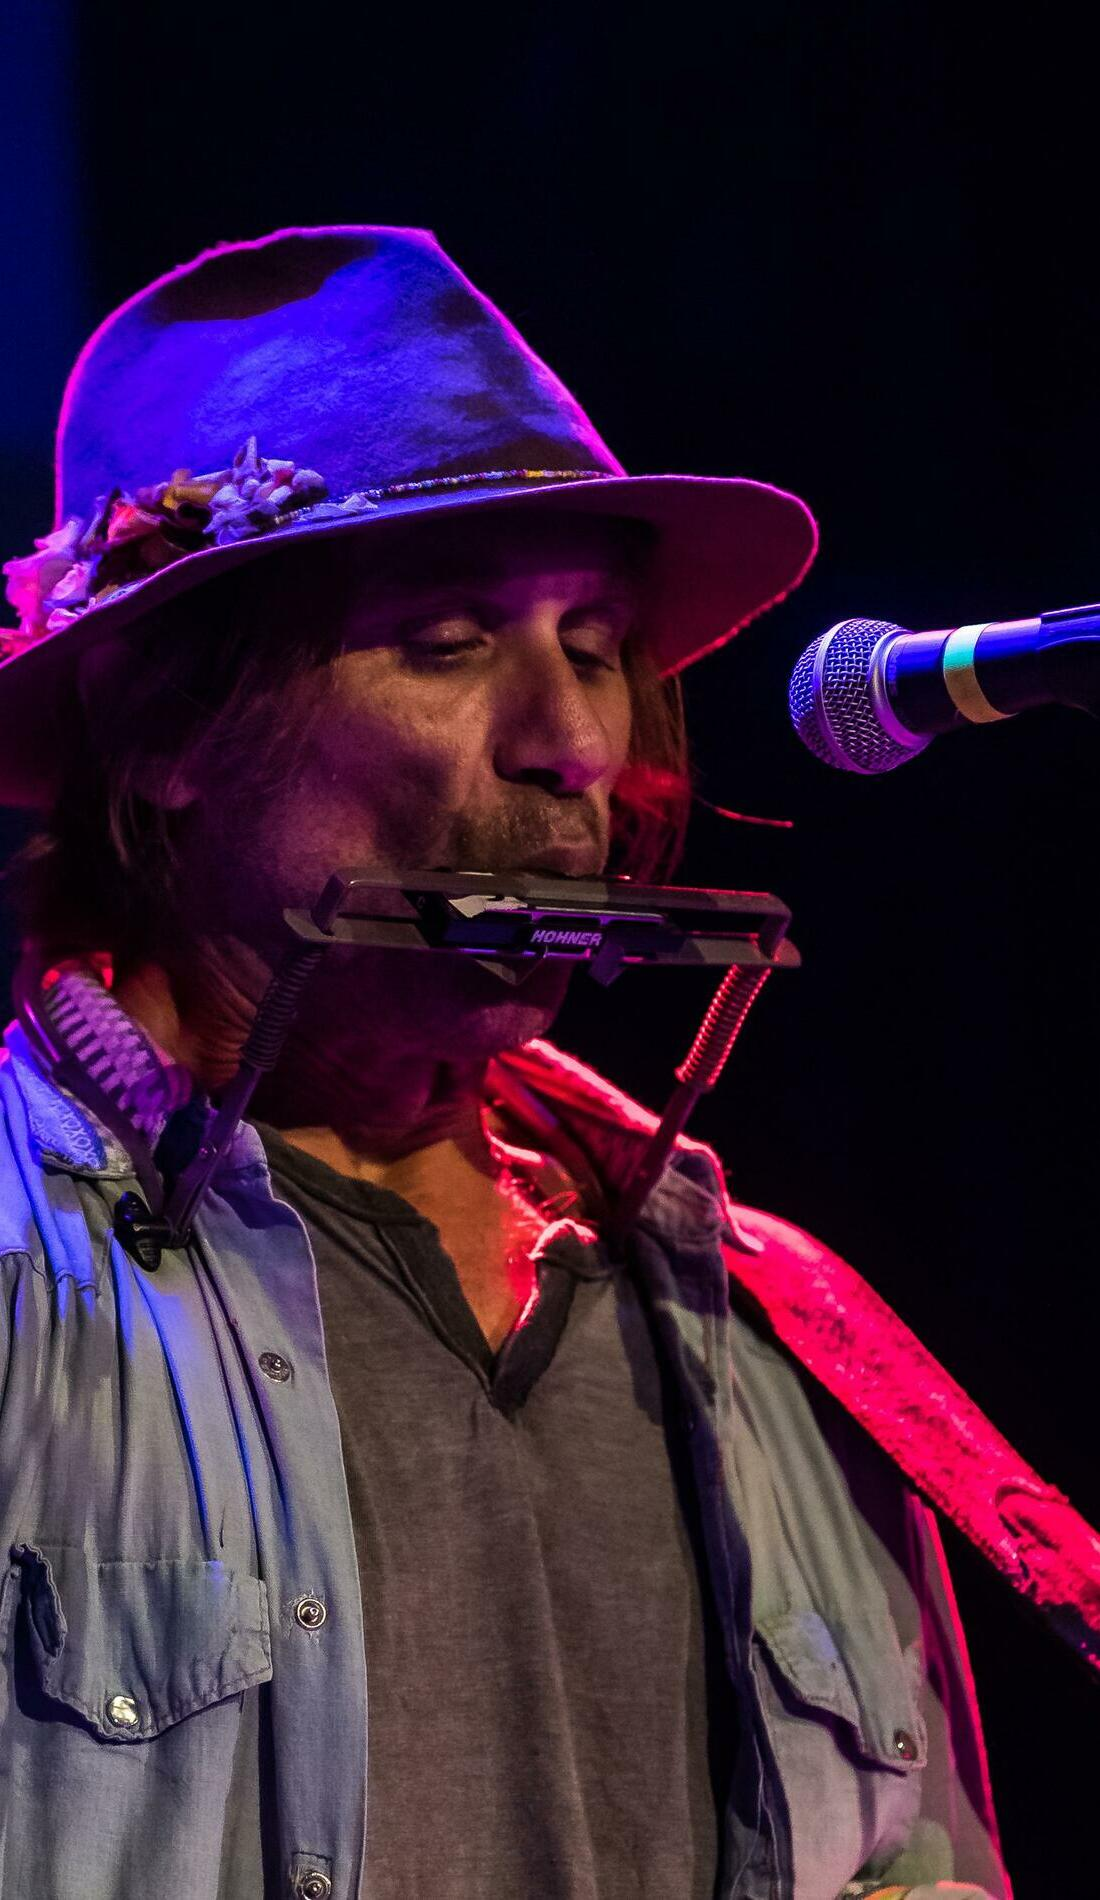 A Todd Snider live event